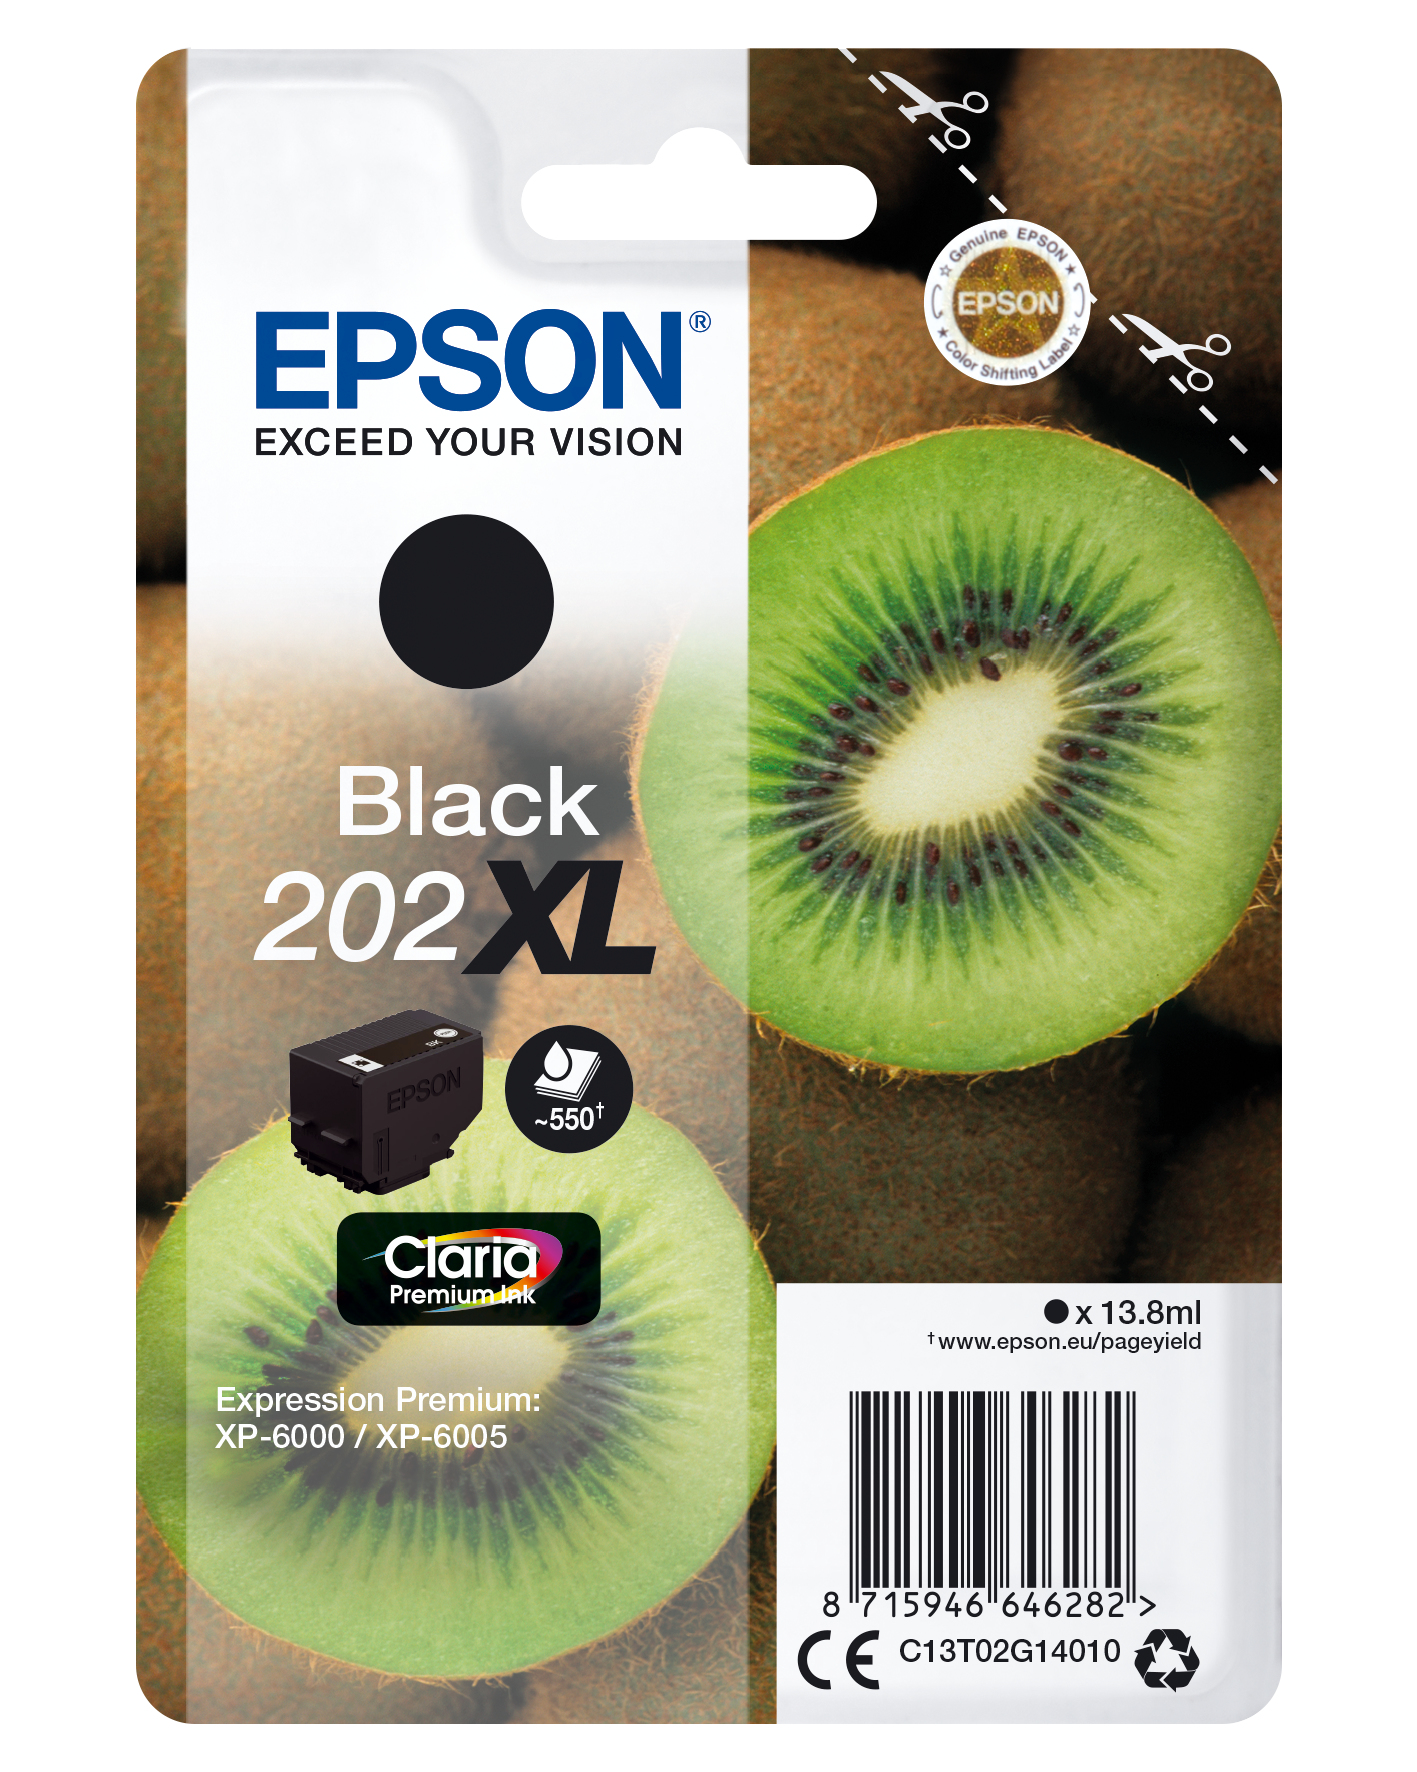 Epson 202 XL Negro Cartucho Original